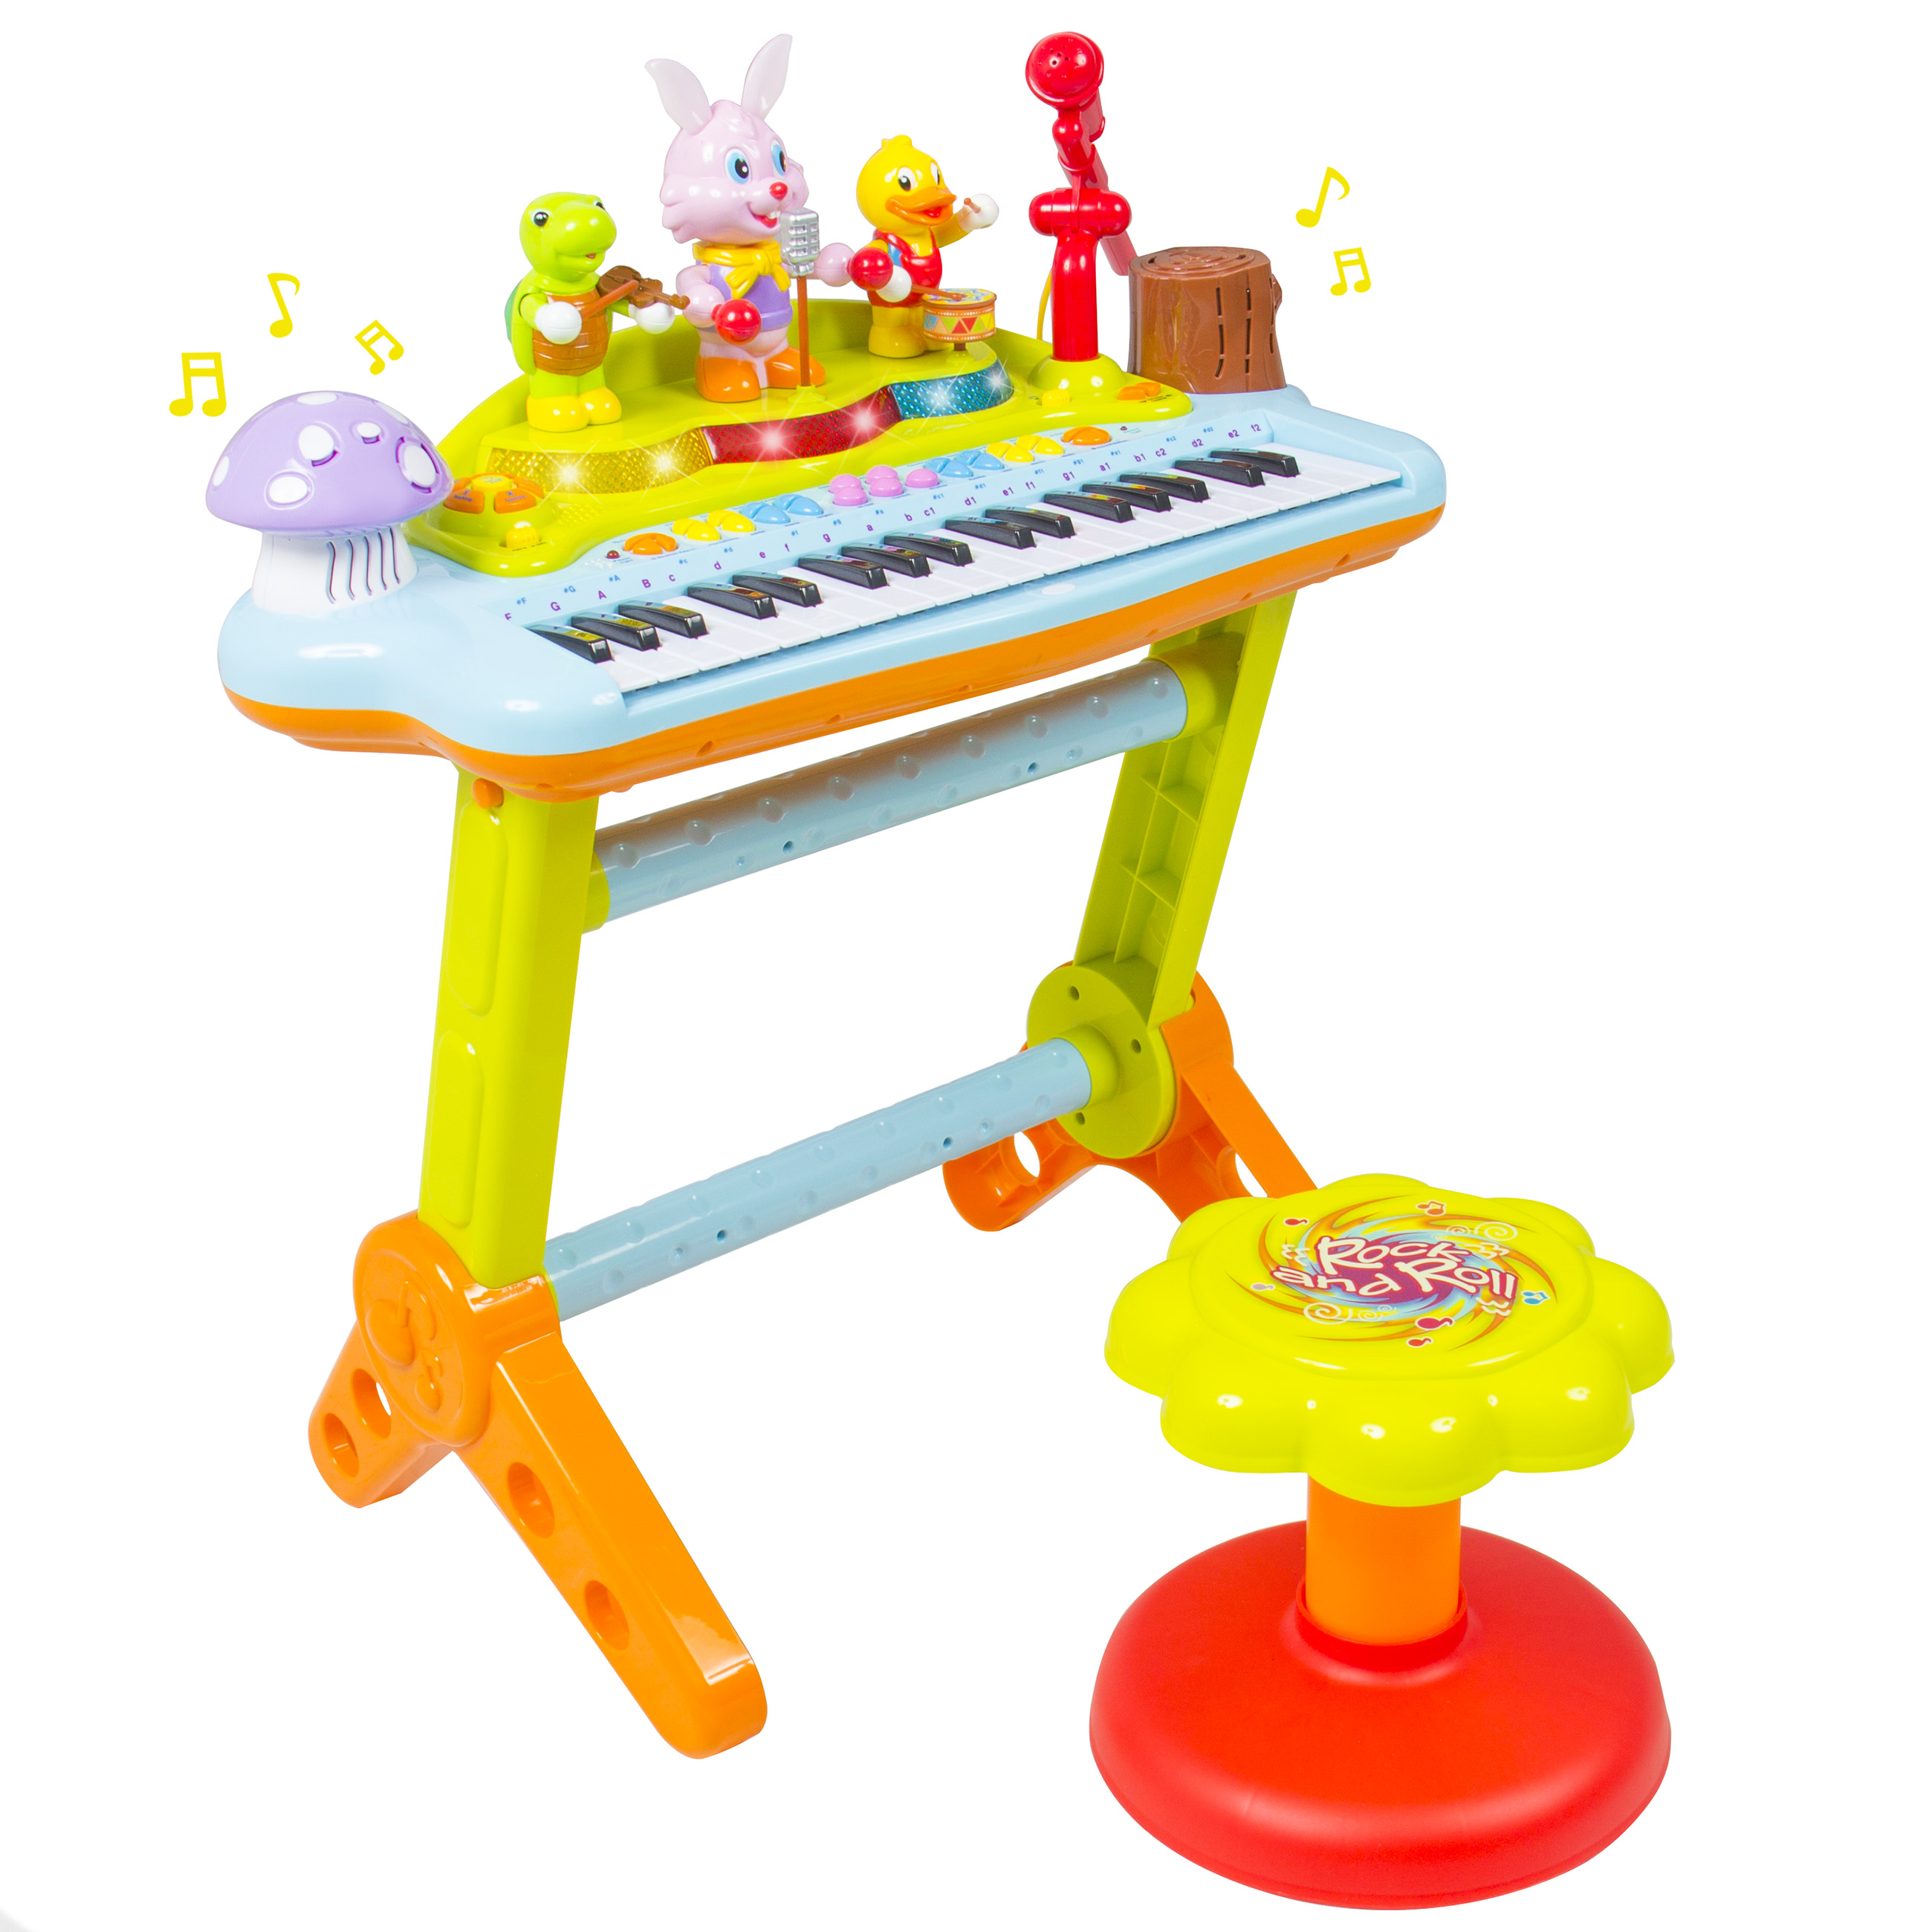 Kids Musical Electronic Keyboard Piano Organ Microphone, Stool, Teaching Light up Keys